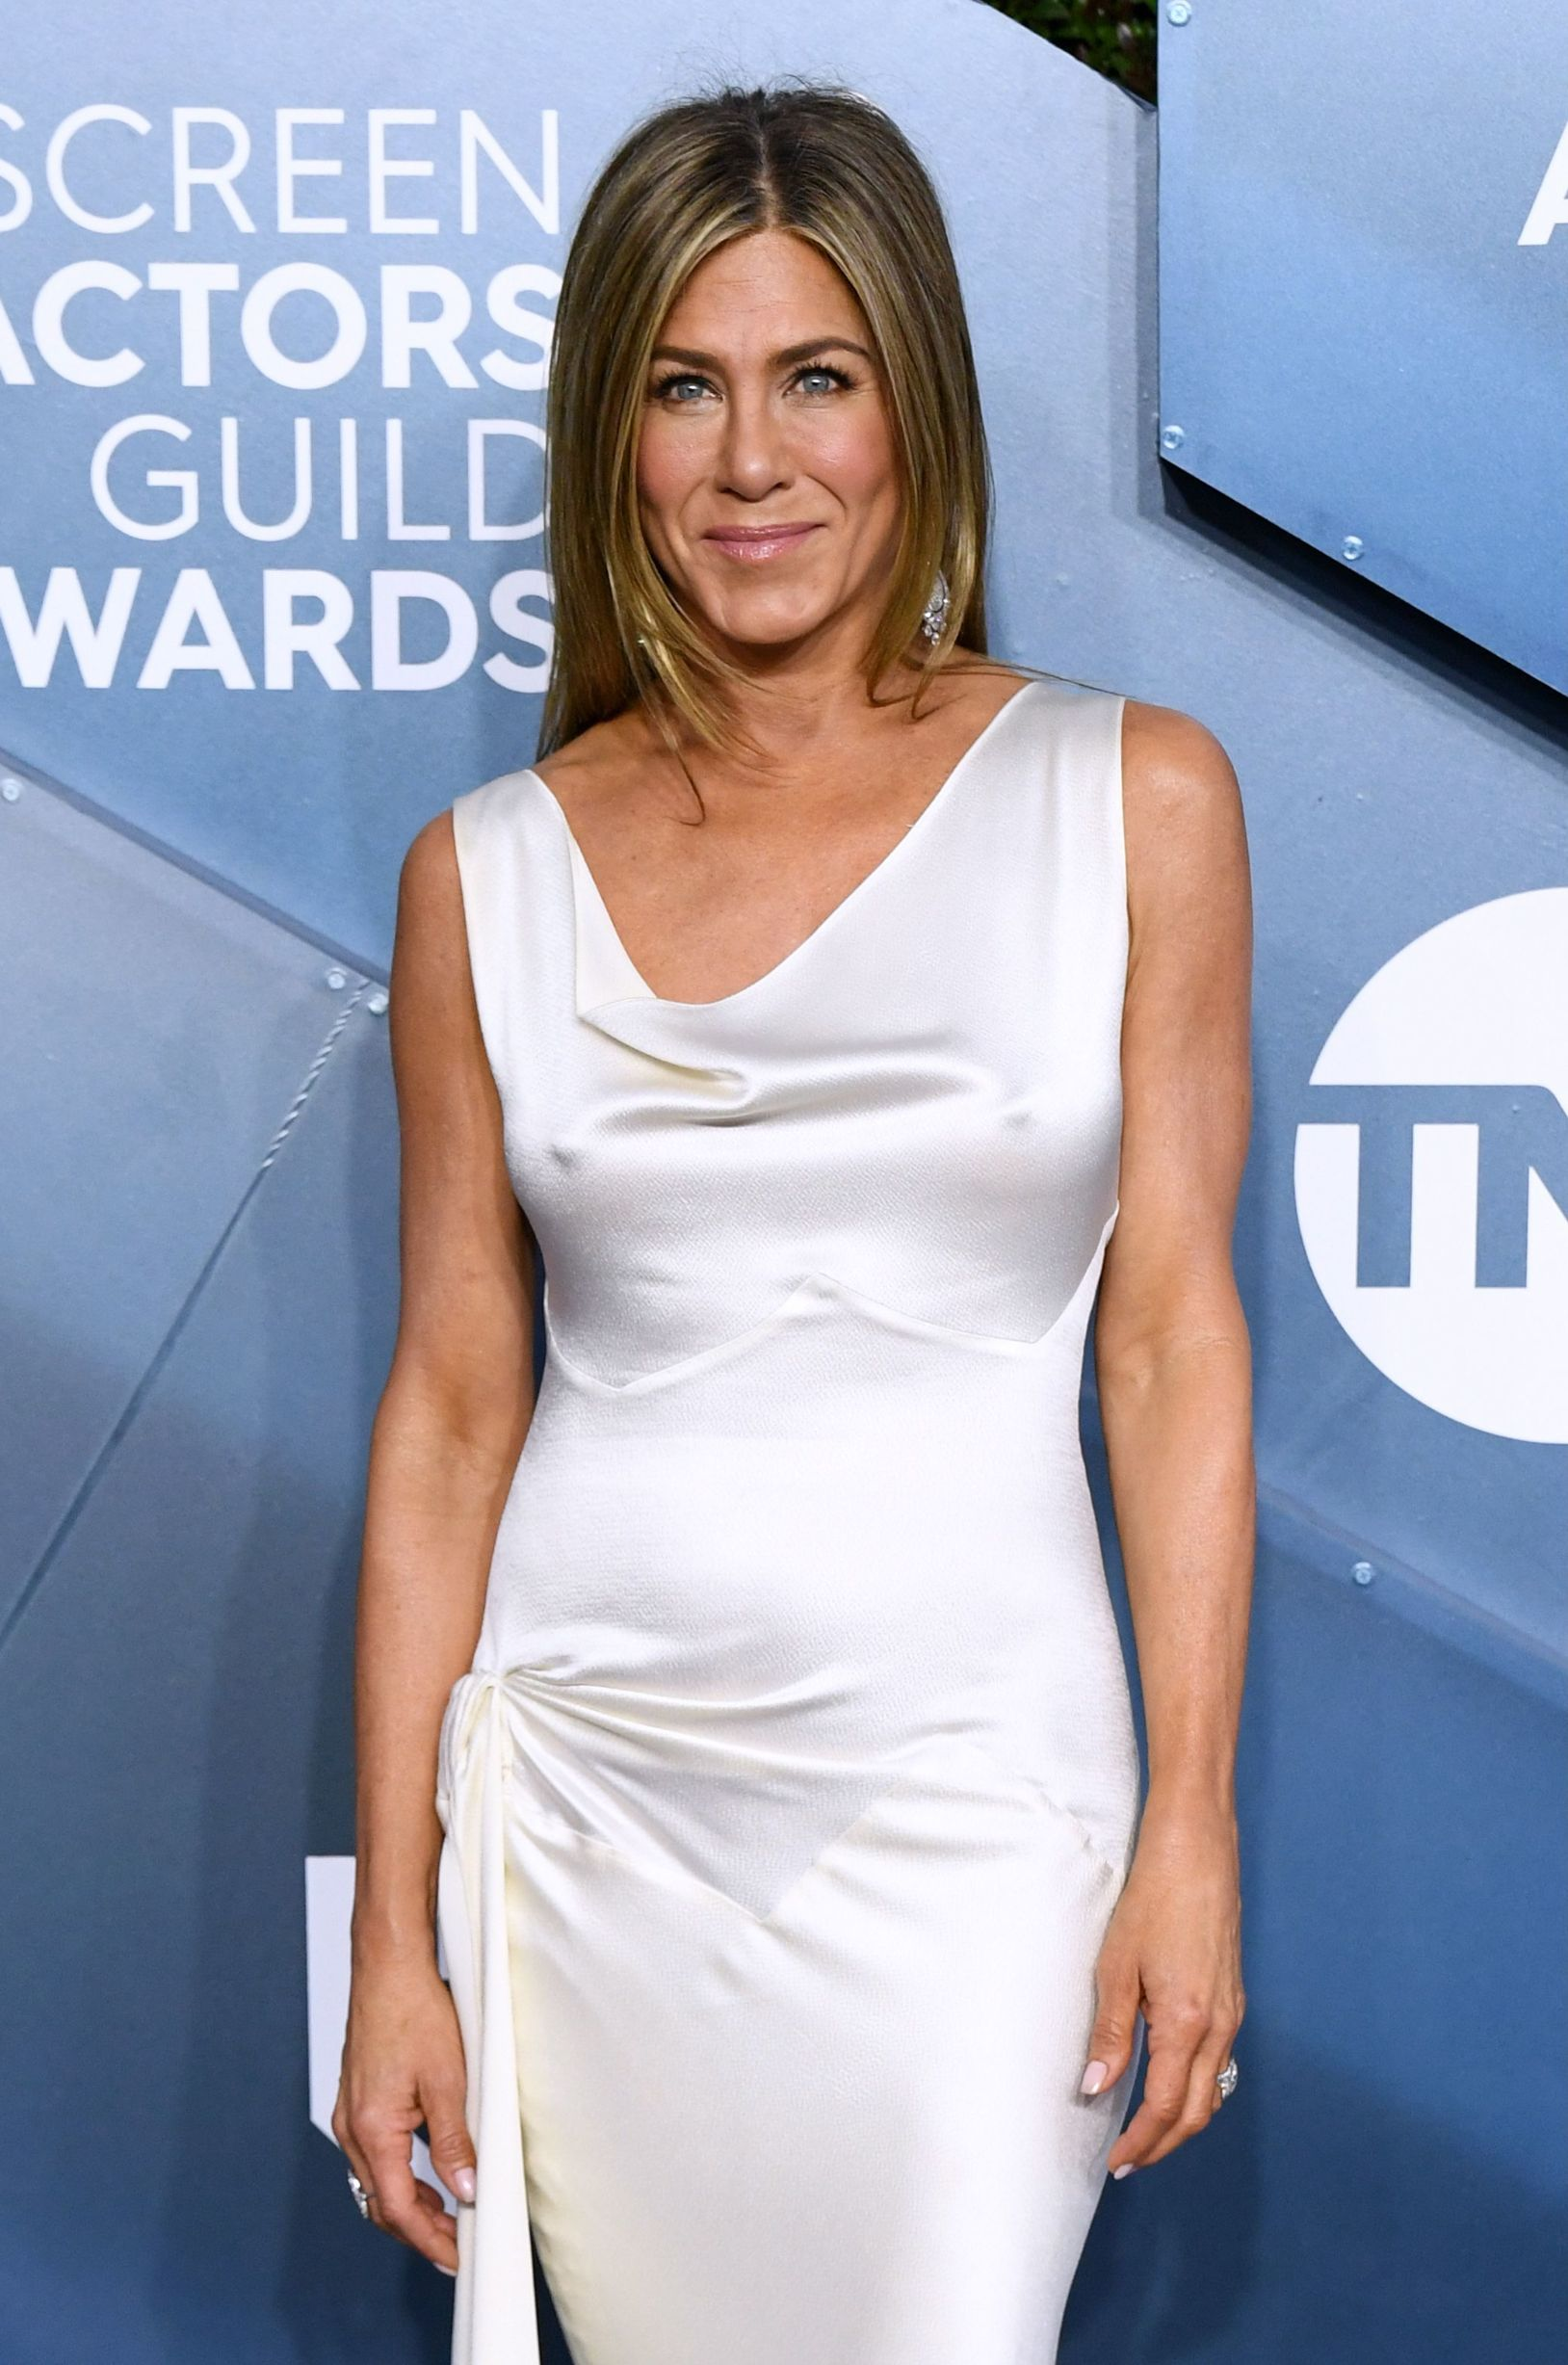 Jennifer Aniston 26th Annual Screen Actors Guild Awards, Arrivals, Shrine Auditorium, Los Angeles, USA - 19 Jan 2020,Image: 493684336, License: Rights-managed, Restrictions: , Model Release: no, Credit line: David Fisher / Shutterstock Editorial / Profimedia